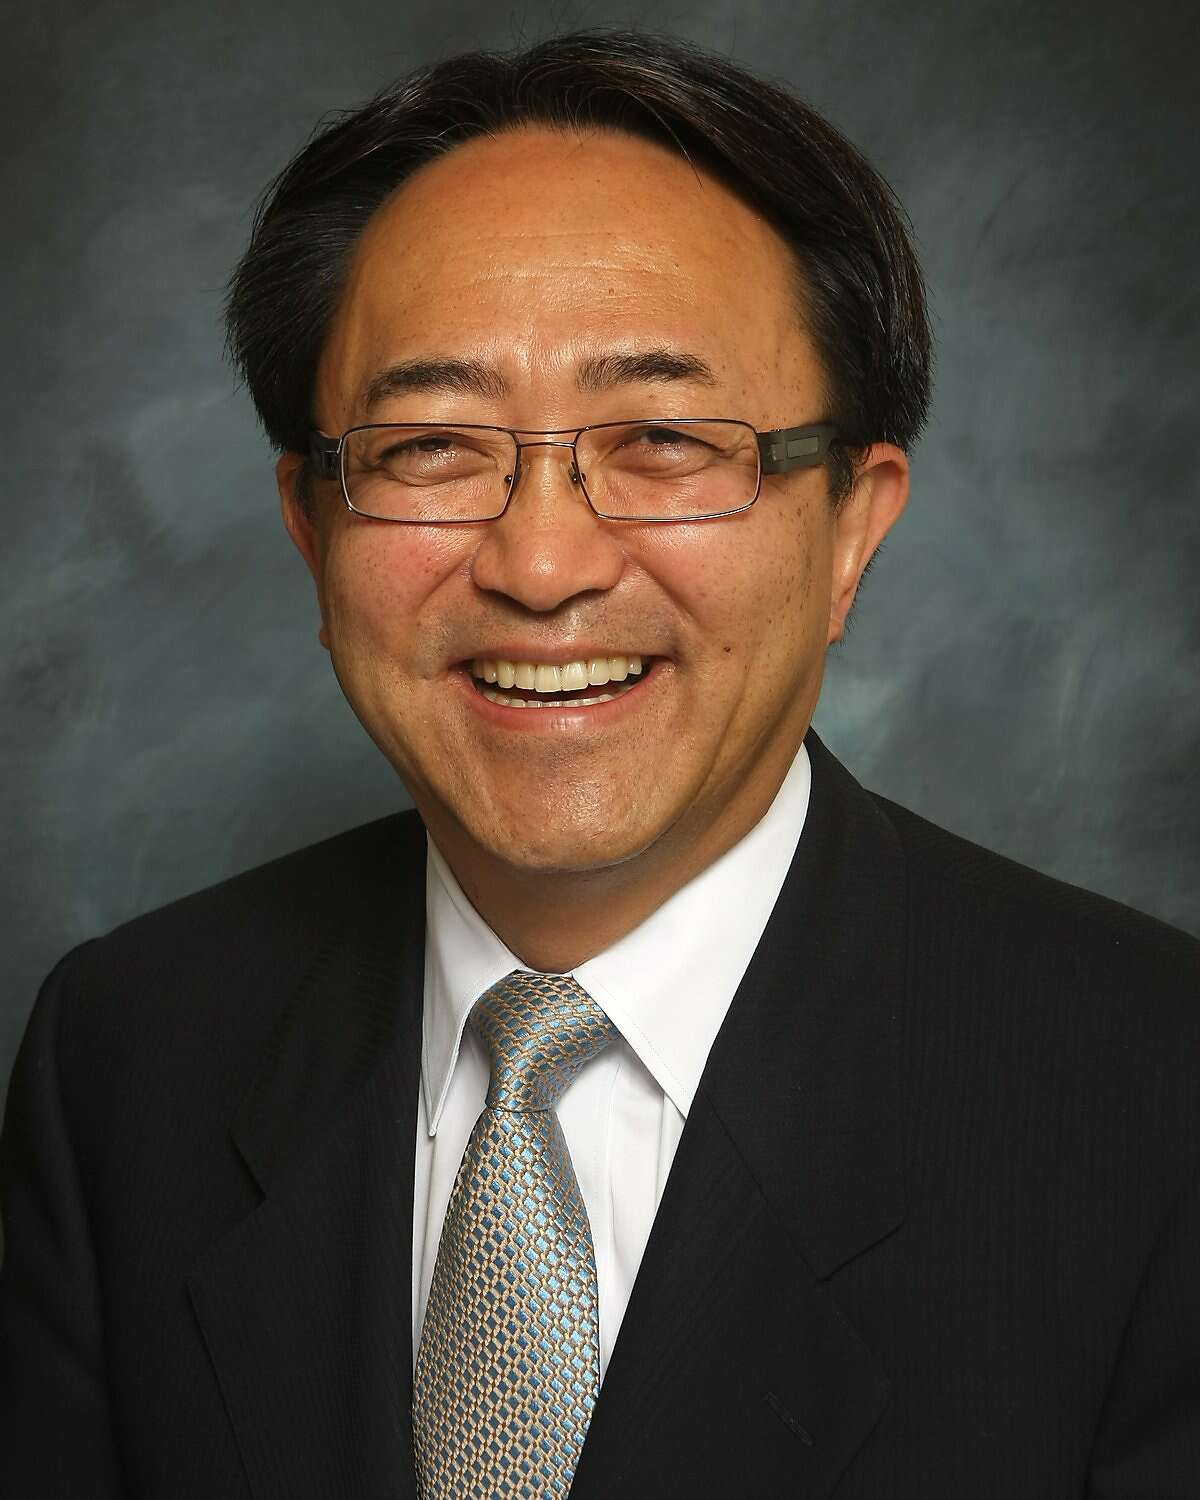 Cal State East Bay President Leroy Morishita will retire at the end of the 2019-20 academic year.